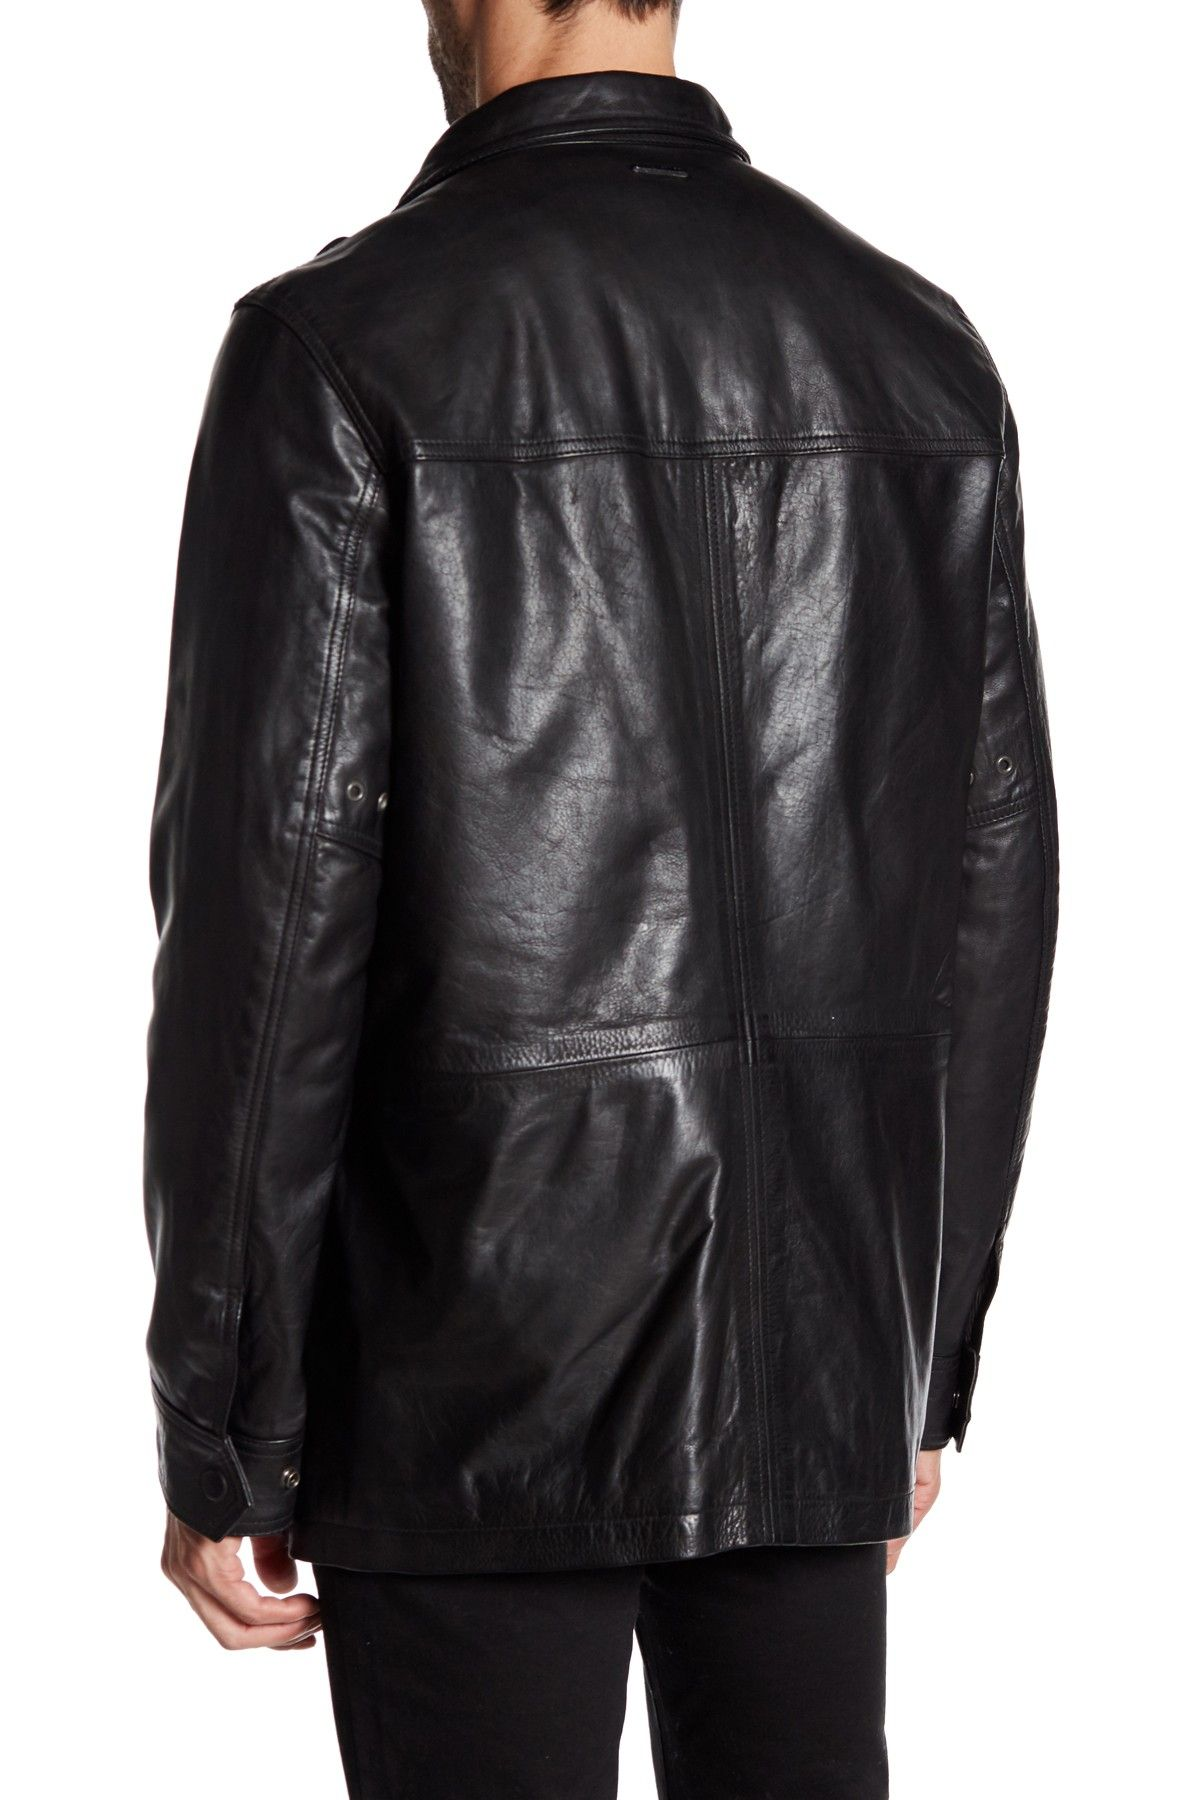 Brimfield Leather Jacket by Andrew Marc on nordstrom_rack